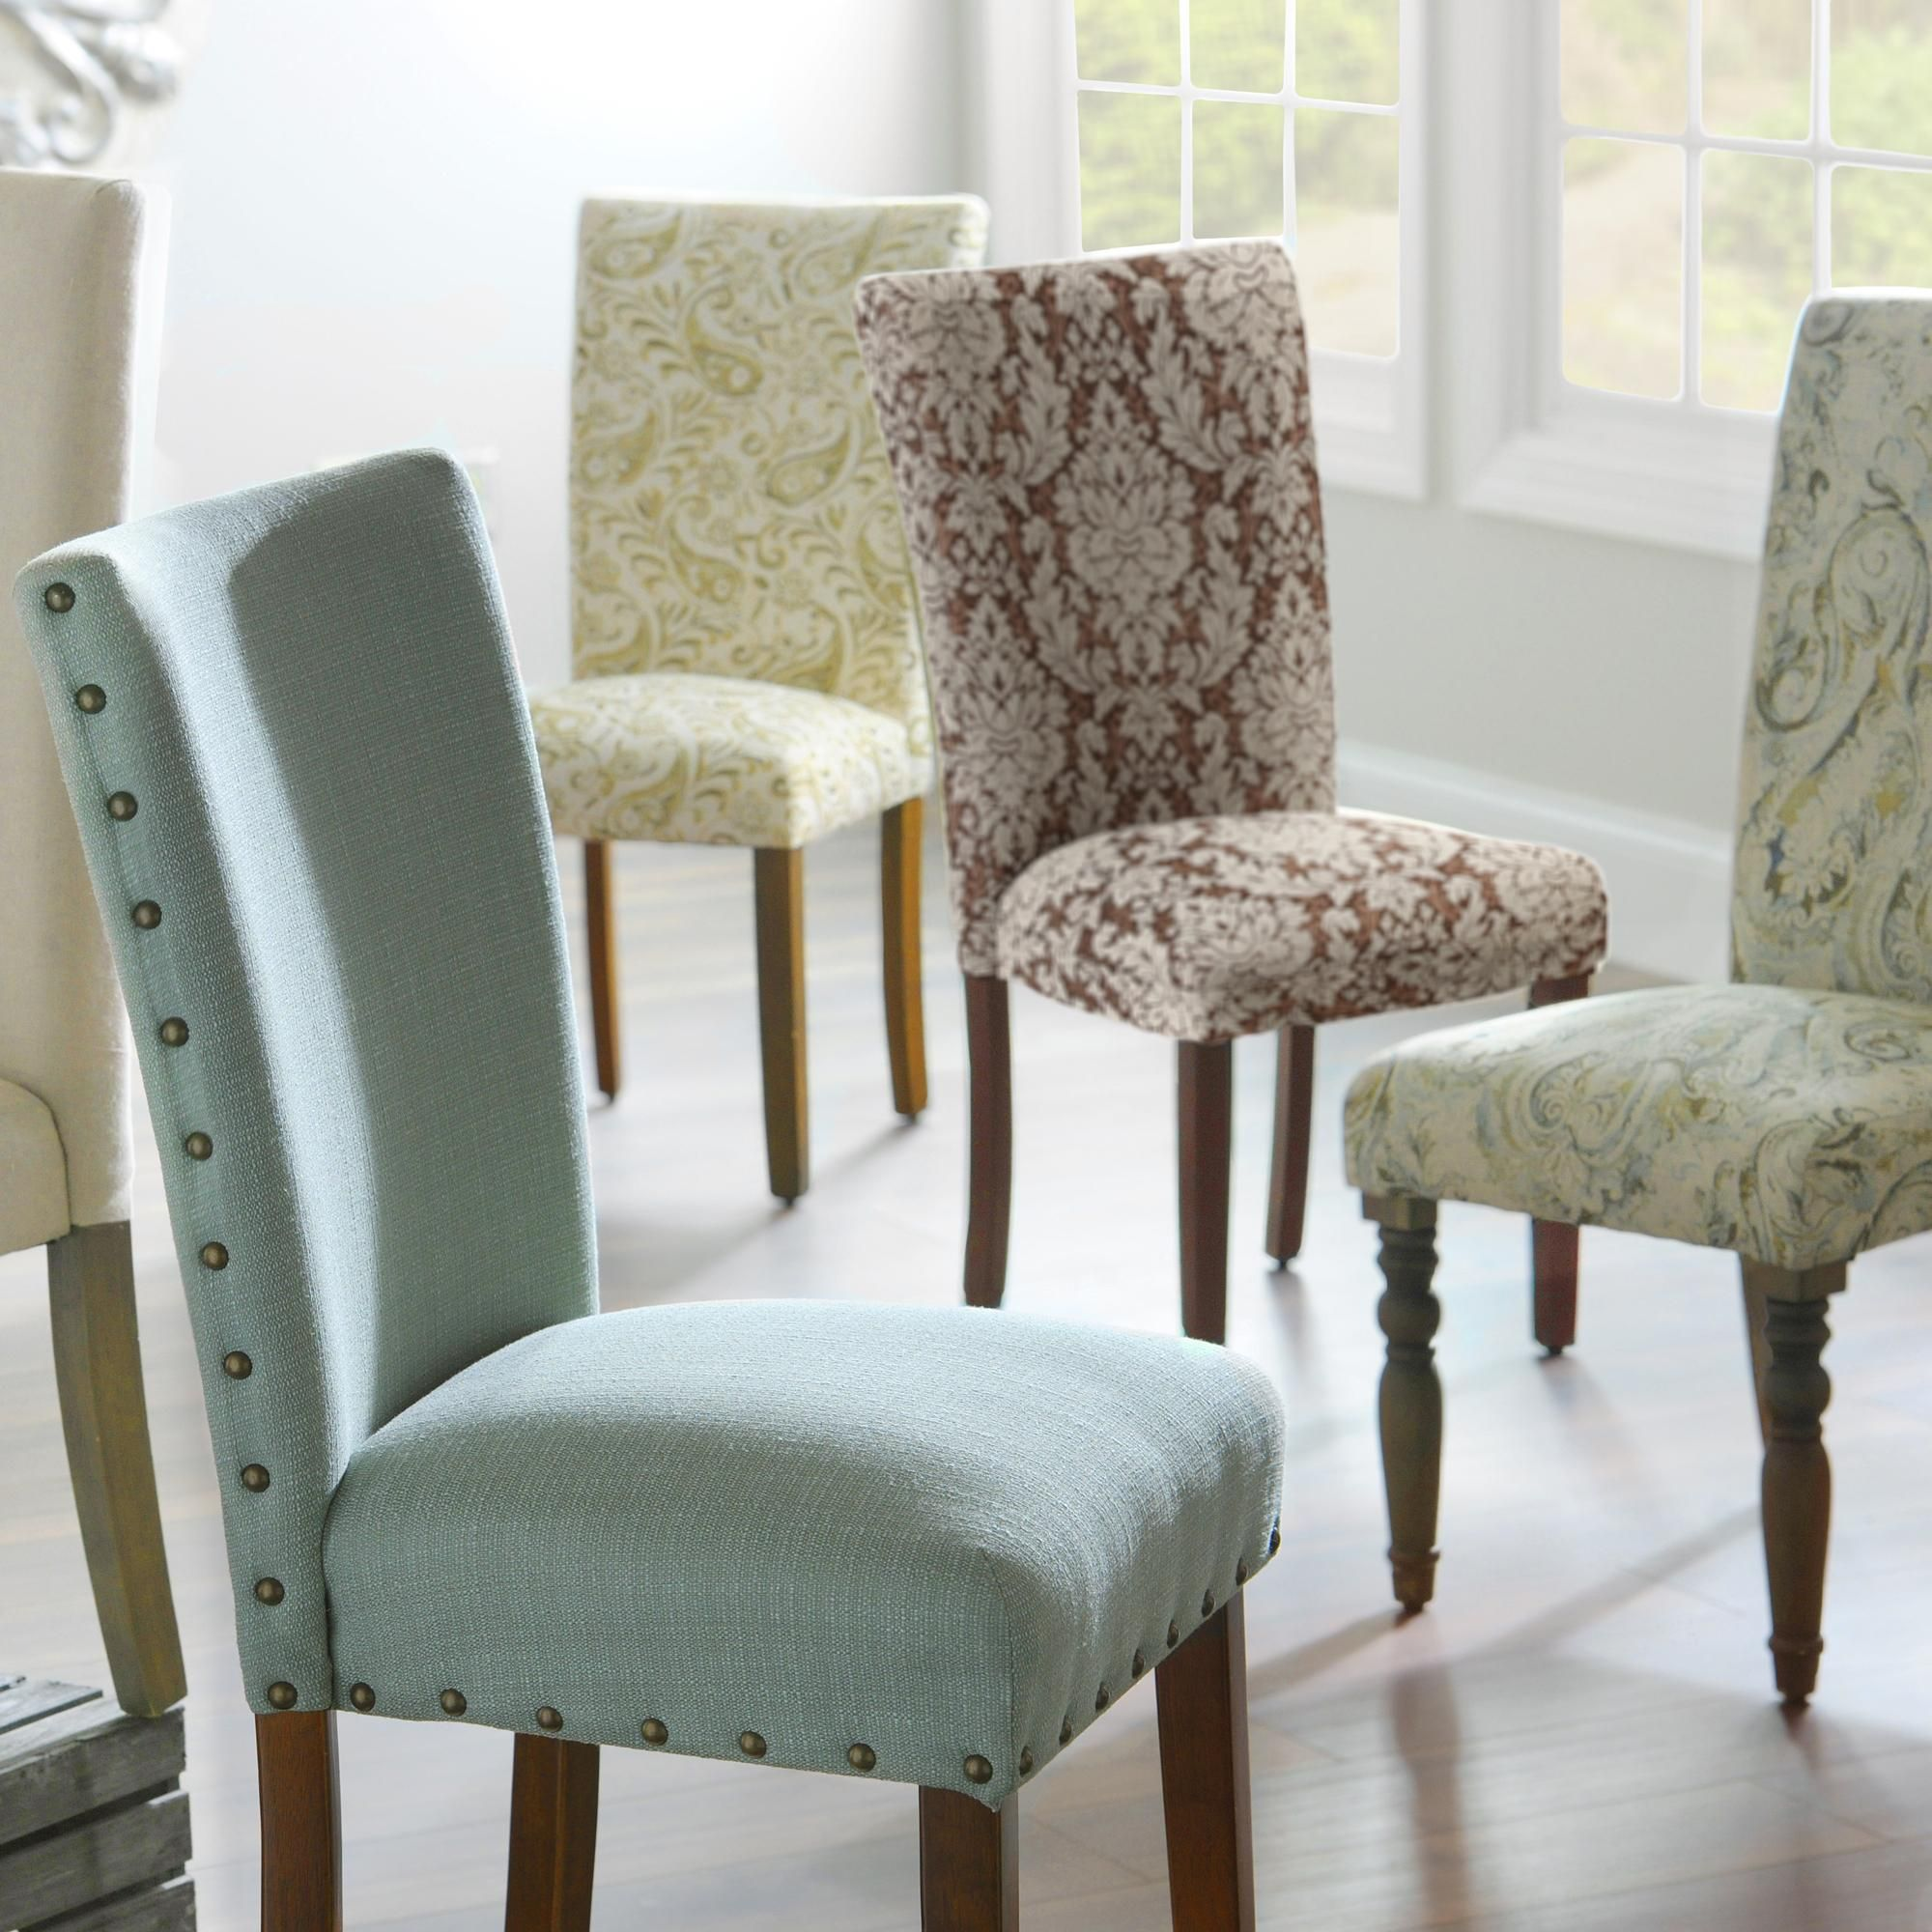 Best Upholstery Fabric For Dining Room Chairs: Our Very Popular Parsons Chairs Are On Sale! Save $20 Off